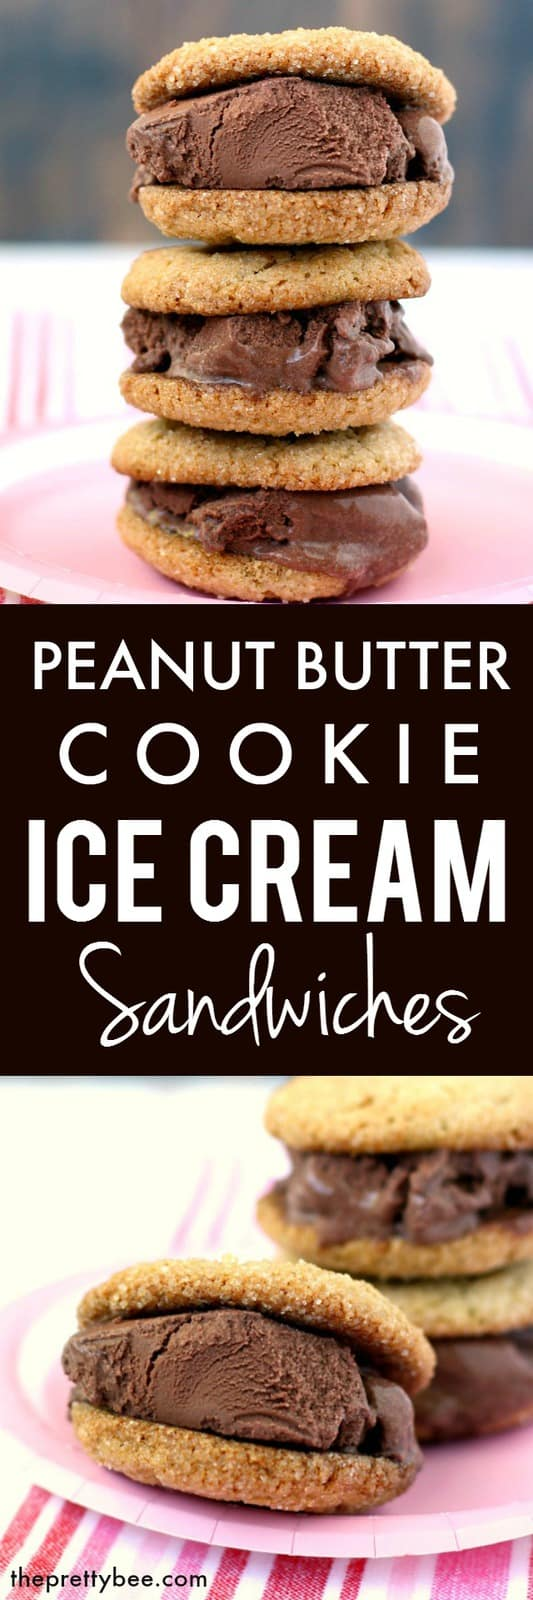 These peanut butter chocolate ice cream sandwiches are gluten free and vegan and so easy to make!